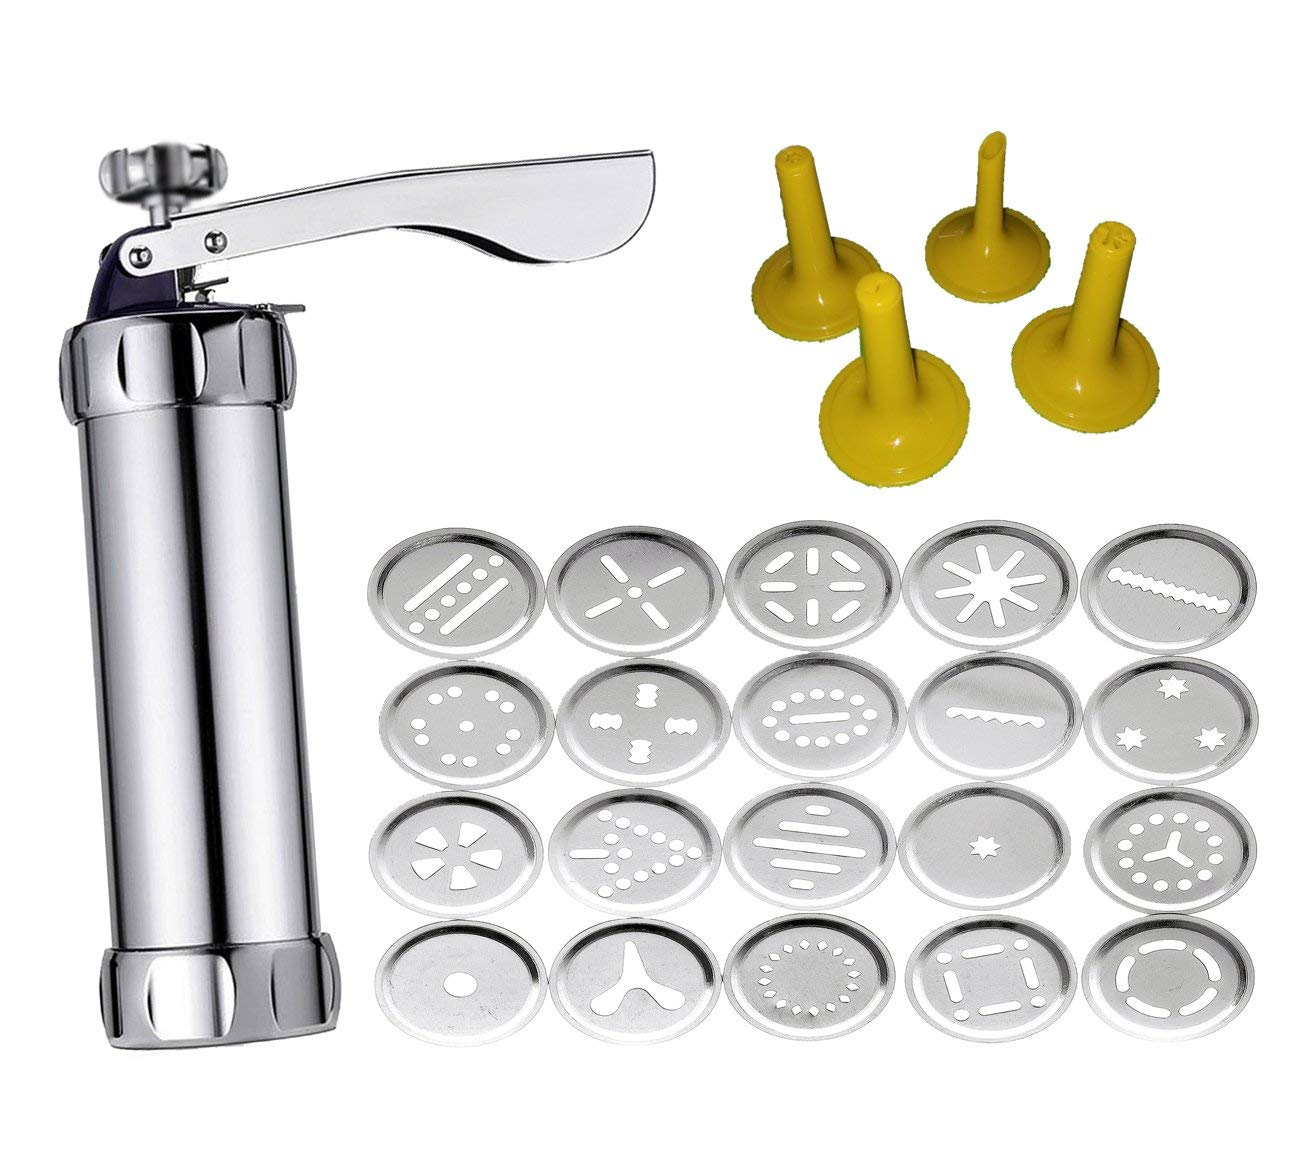 Stainless Steel Cookie Press Kit - Biscuit Gun Set with 20Pcs Cookie Disc Shapes and 4Pcs Decorating Tips by Sindh (Image #1)